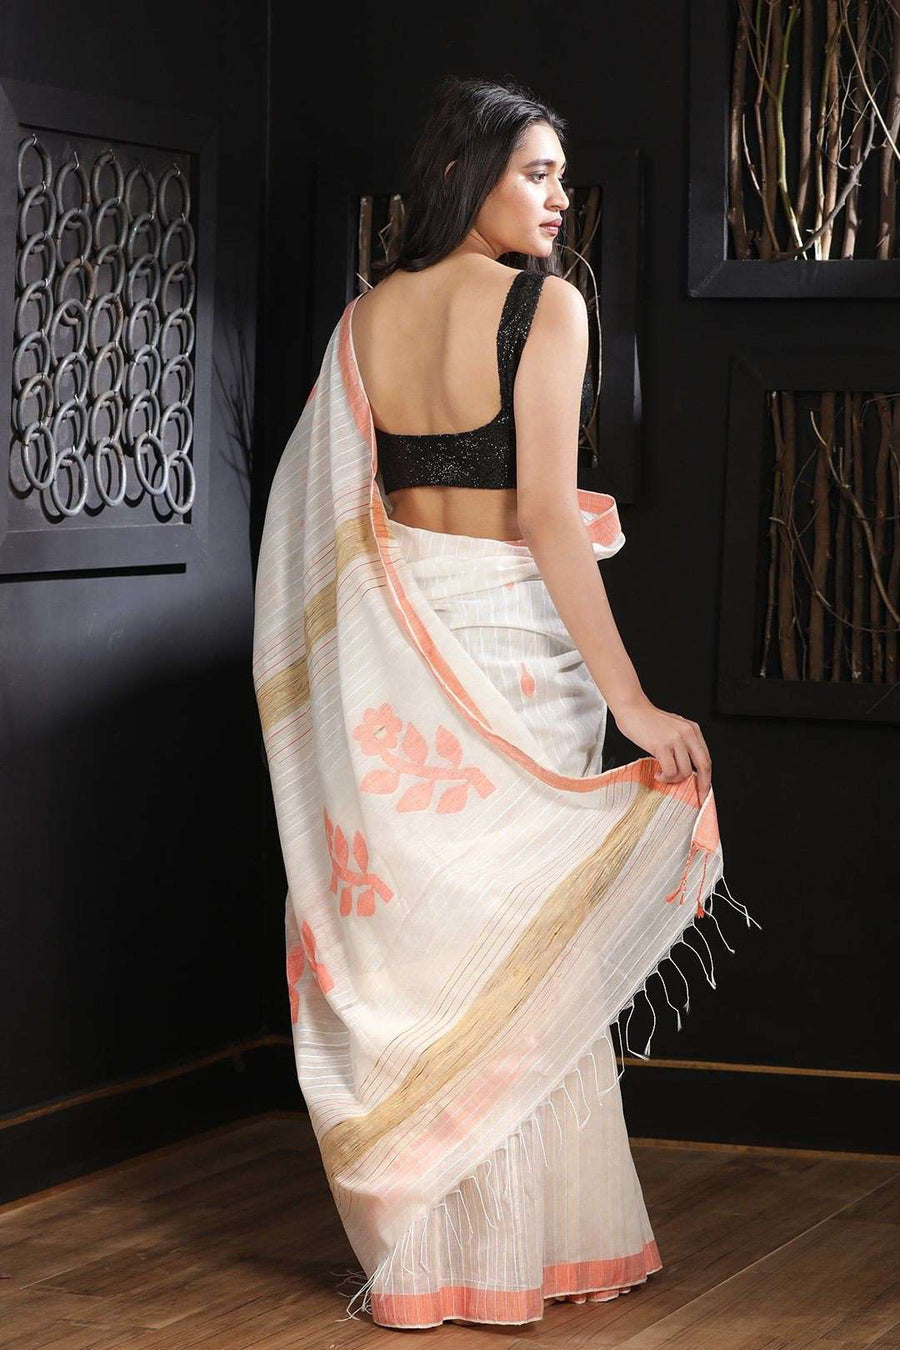 White Blended Cotton Saree With Pink Border Akasha Roopkatha - A Story of Art